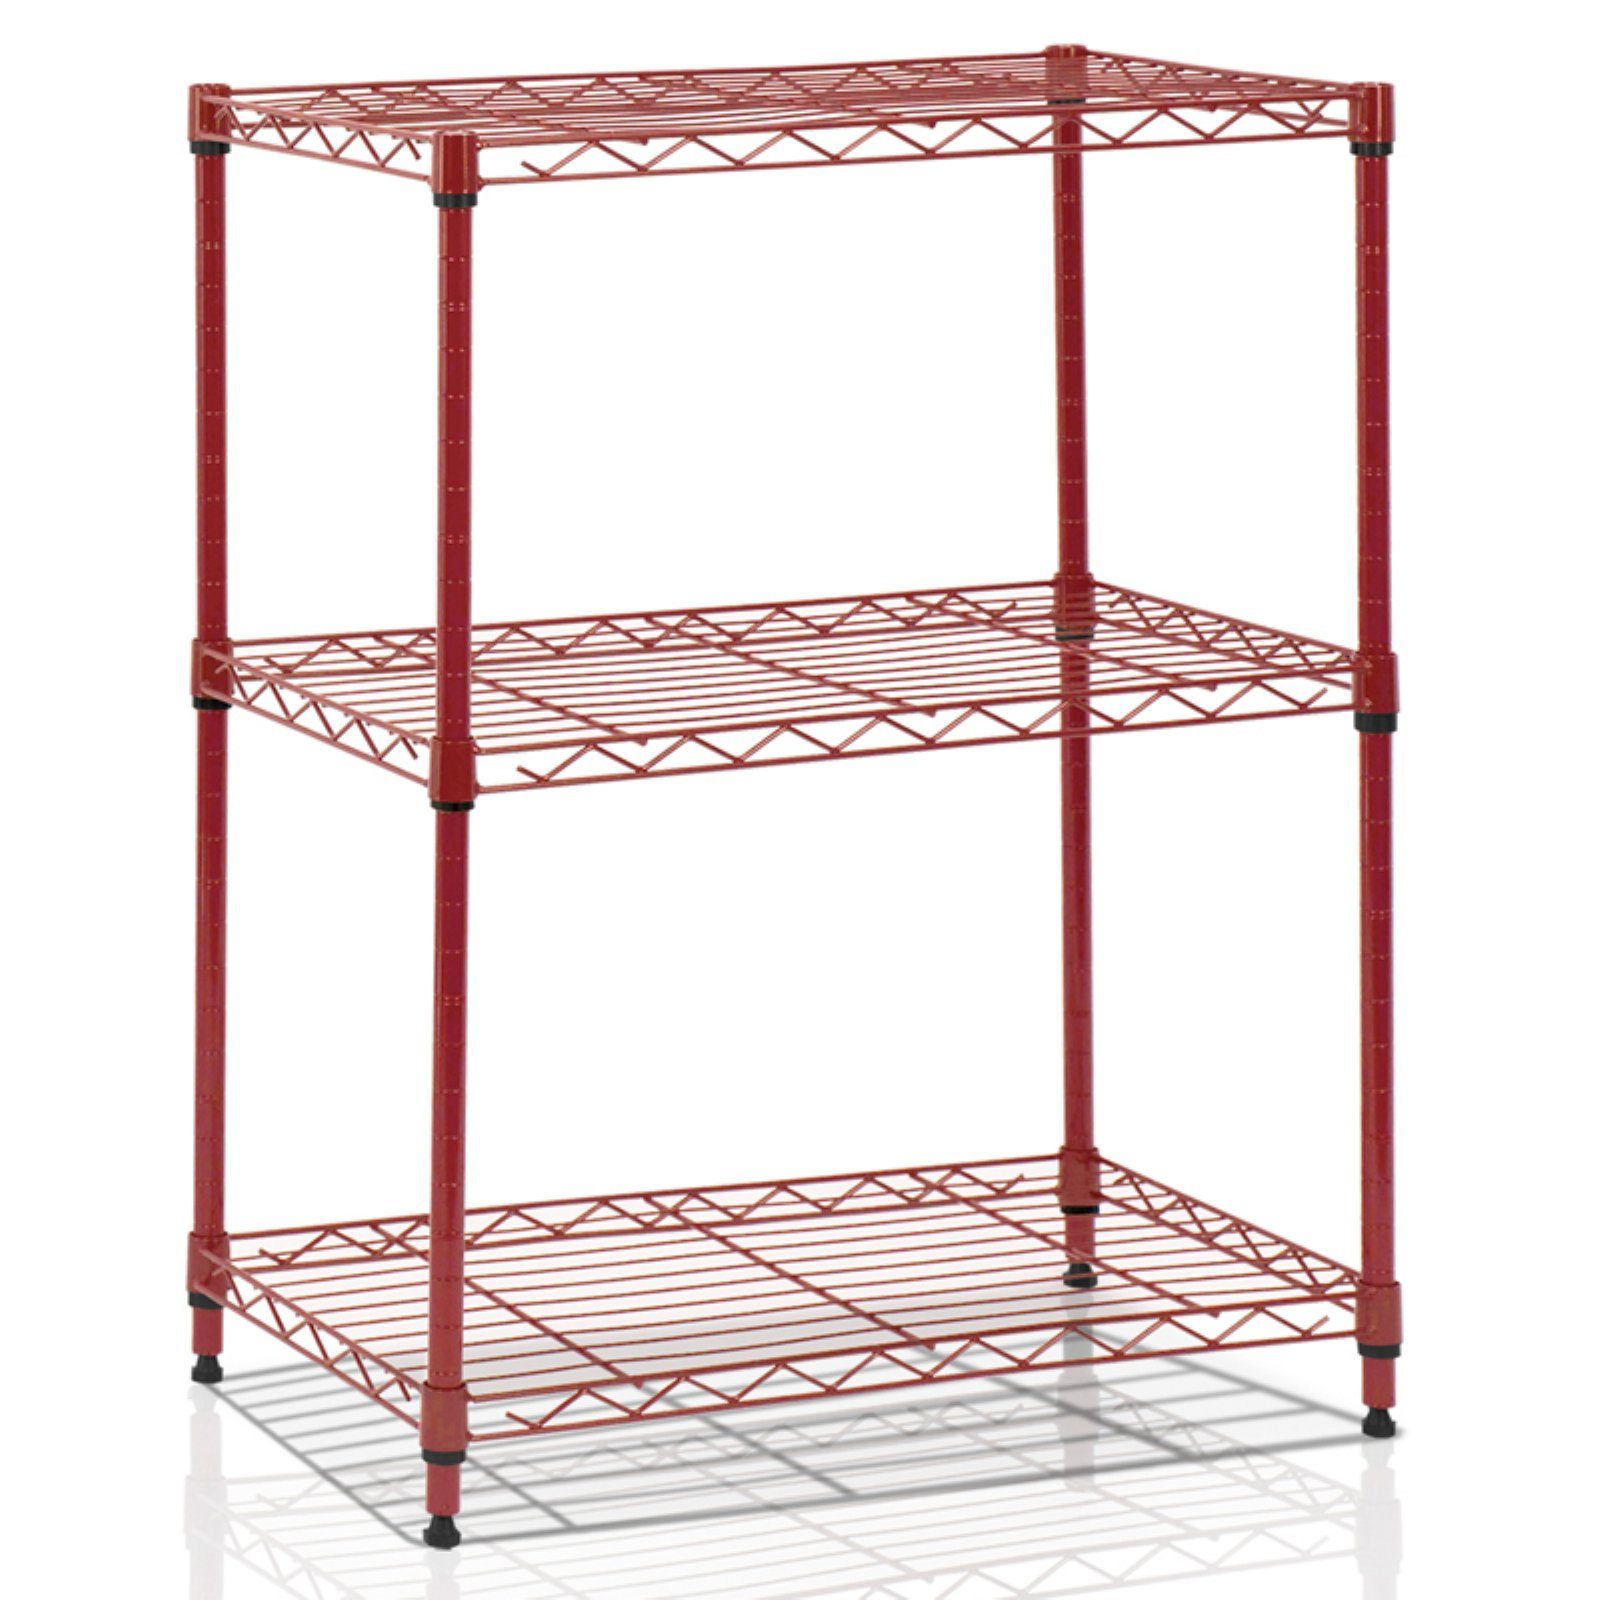 Furinno Wayar 3-Tier Heavy-Duty Wire Shelving, Burgundy